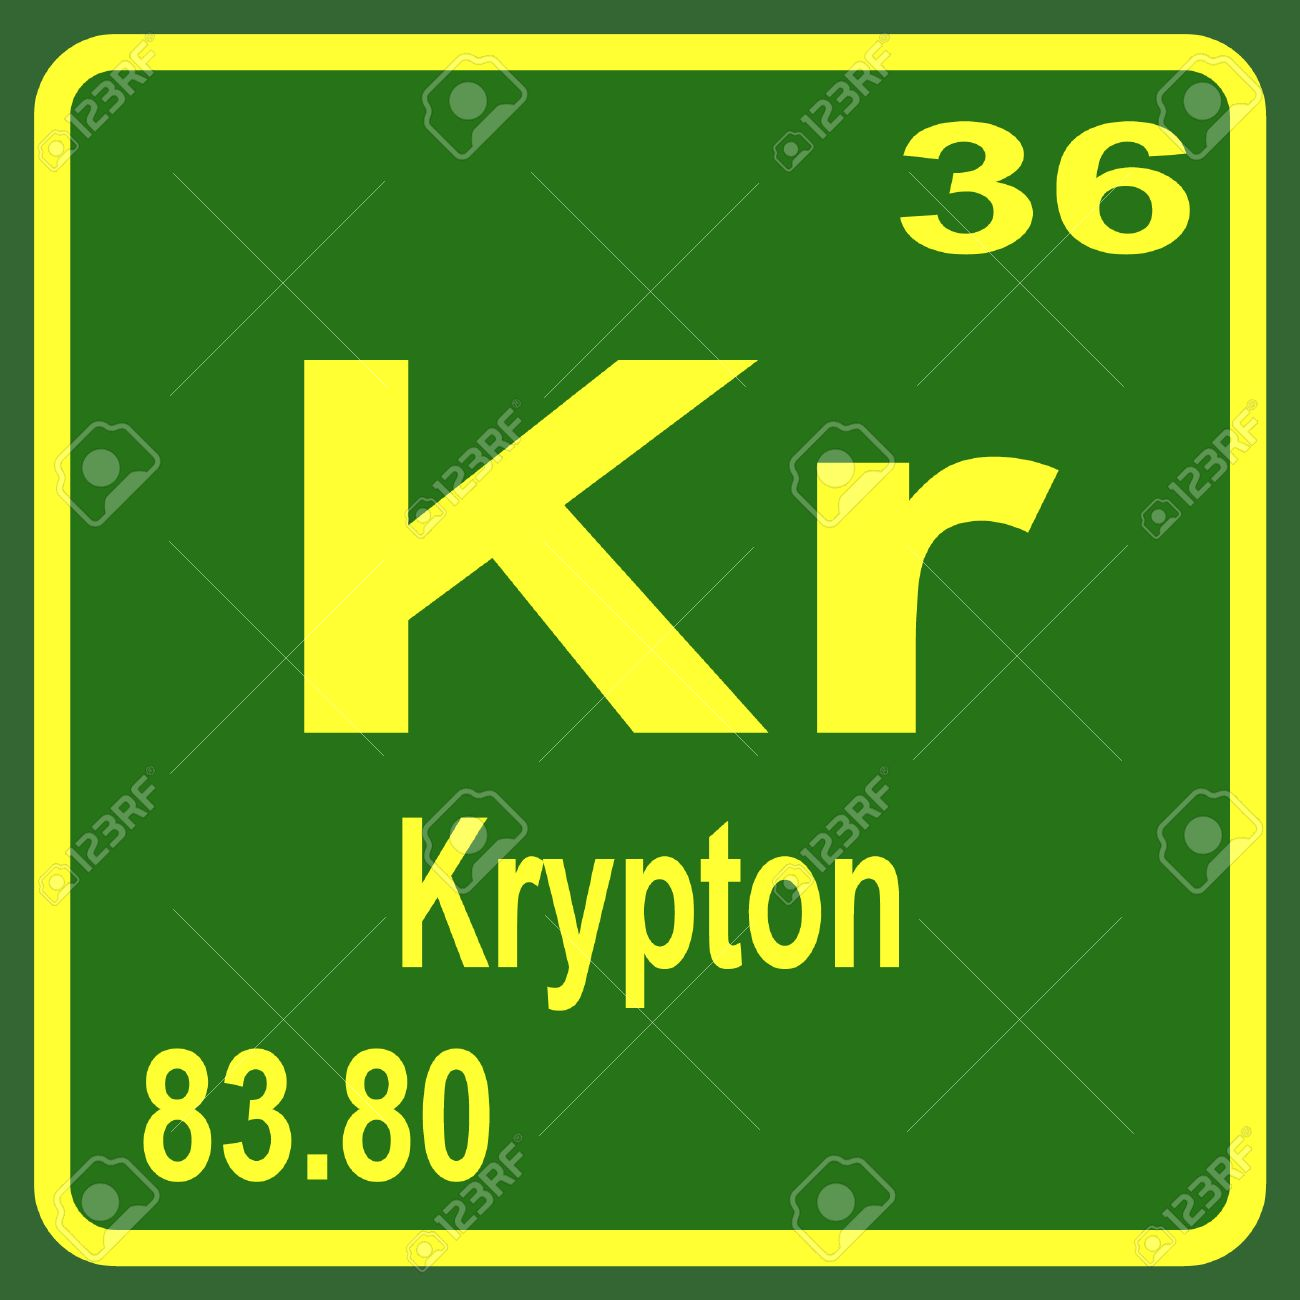 Periodic table of elements krypton royalty free cliparts vectors periodic table of elements krypton stock vector 53900424 urtaz Choice Image